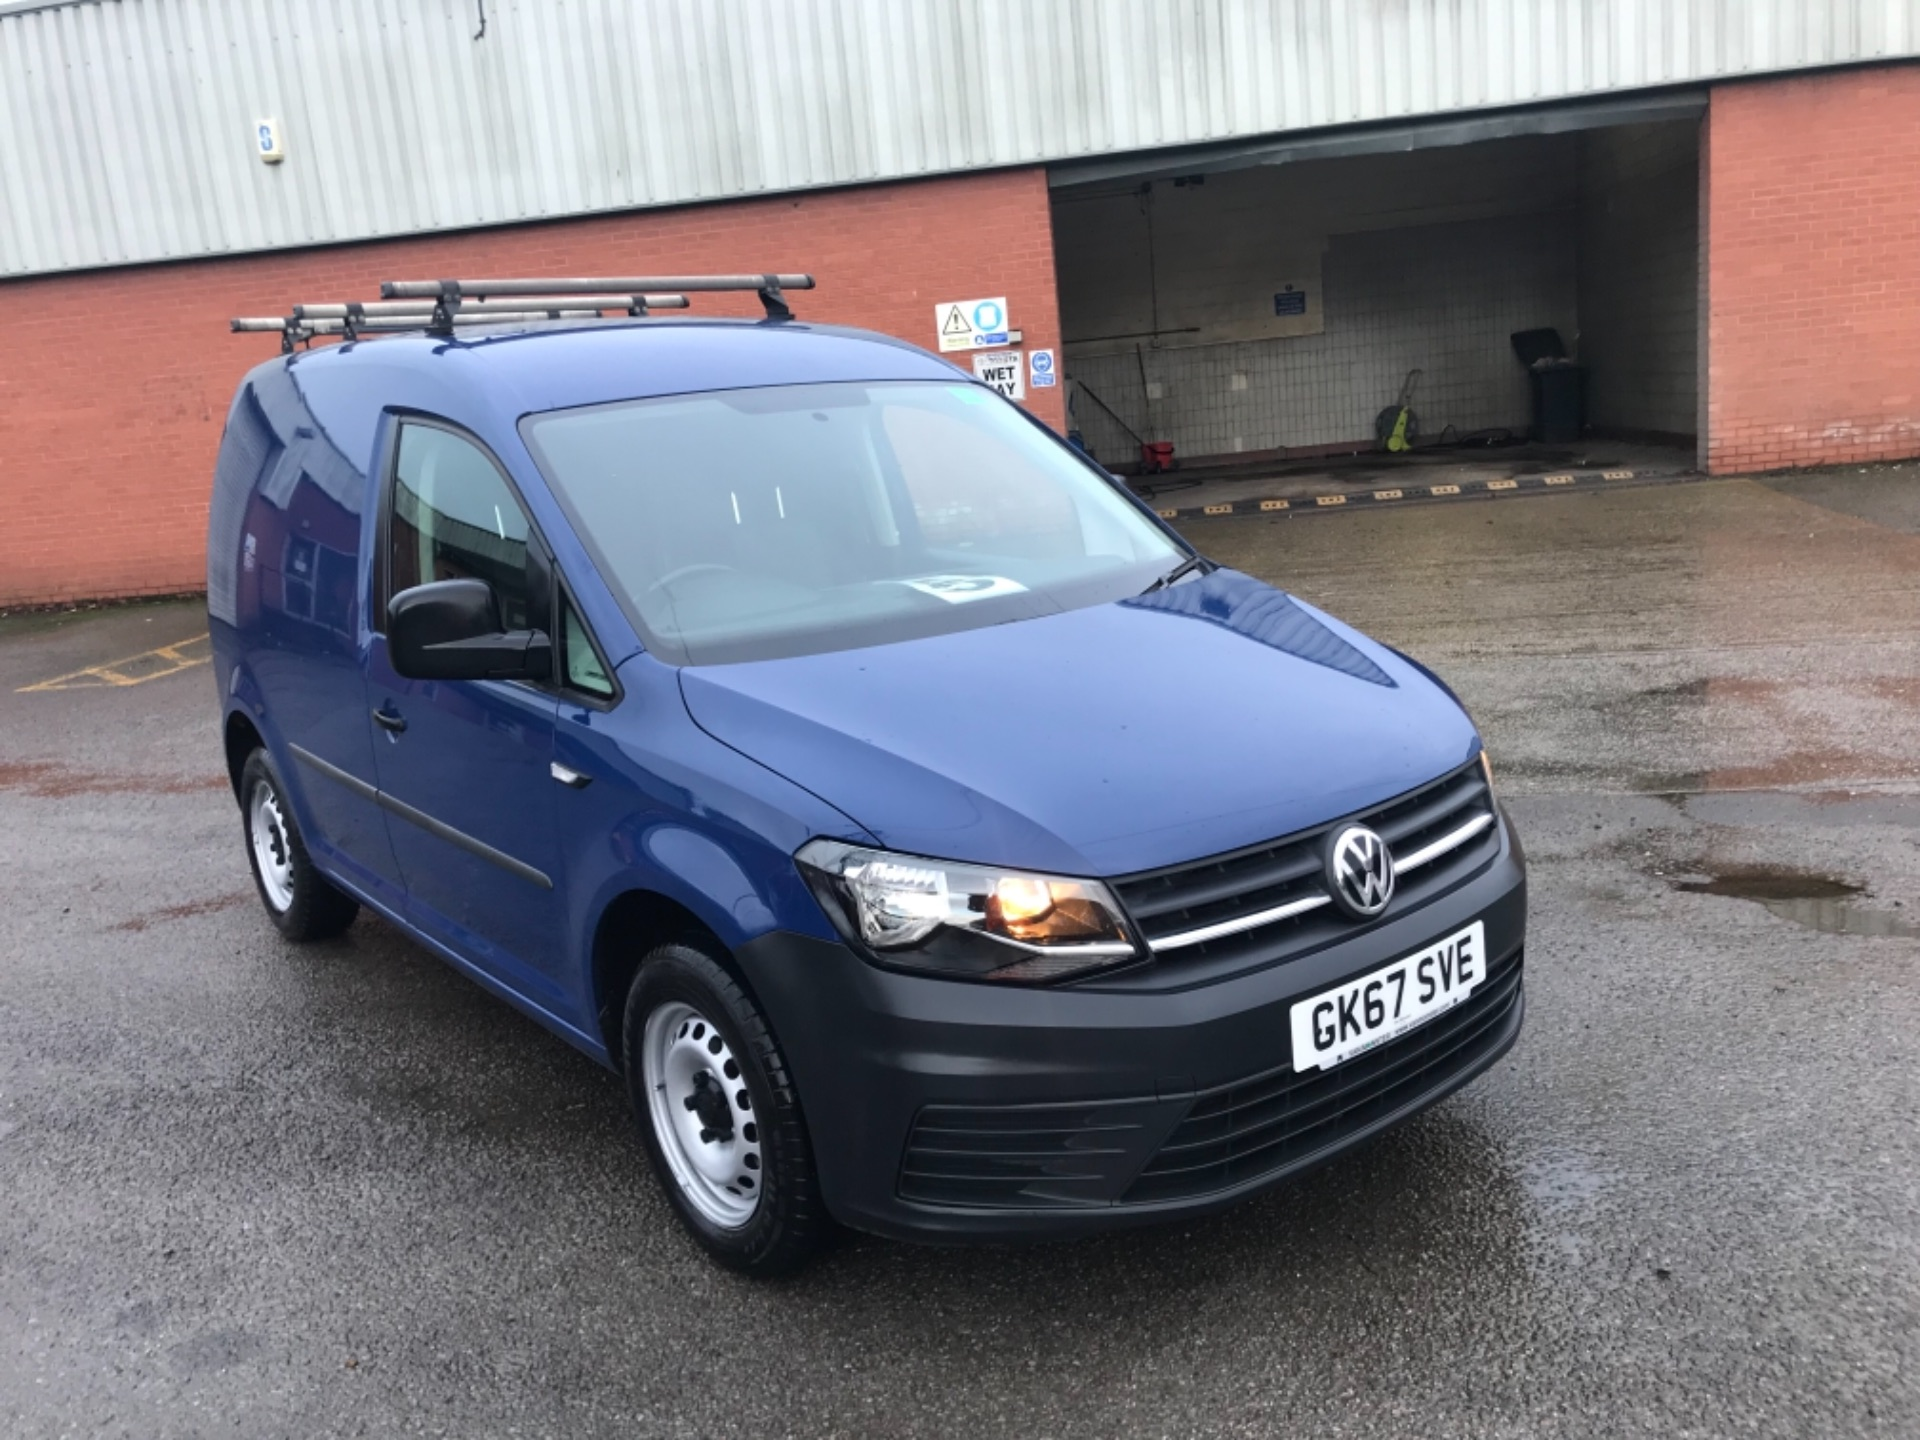 2017 Volkswagen Caddy 2.0 Tdi Bluemotion Tech 102Ps Startline Van EURO 6 (GK67SVE)